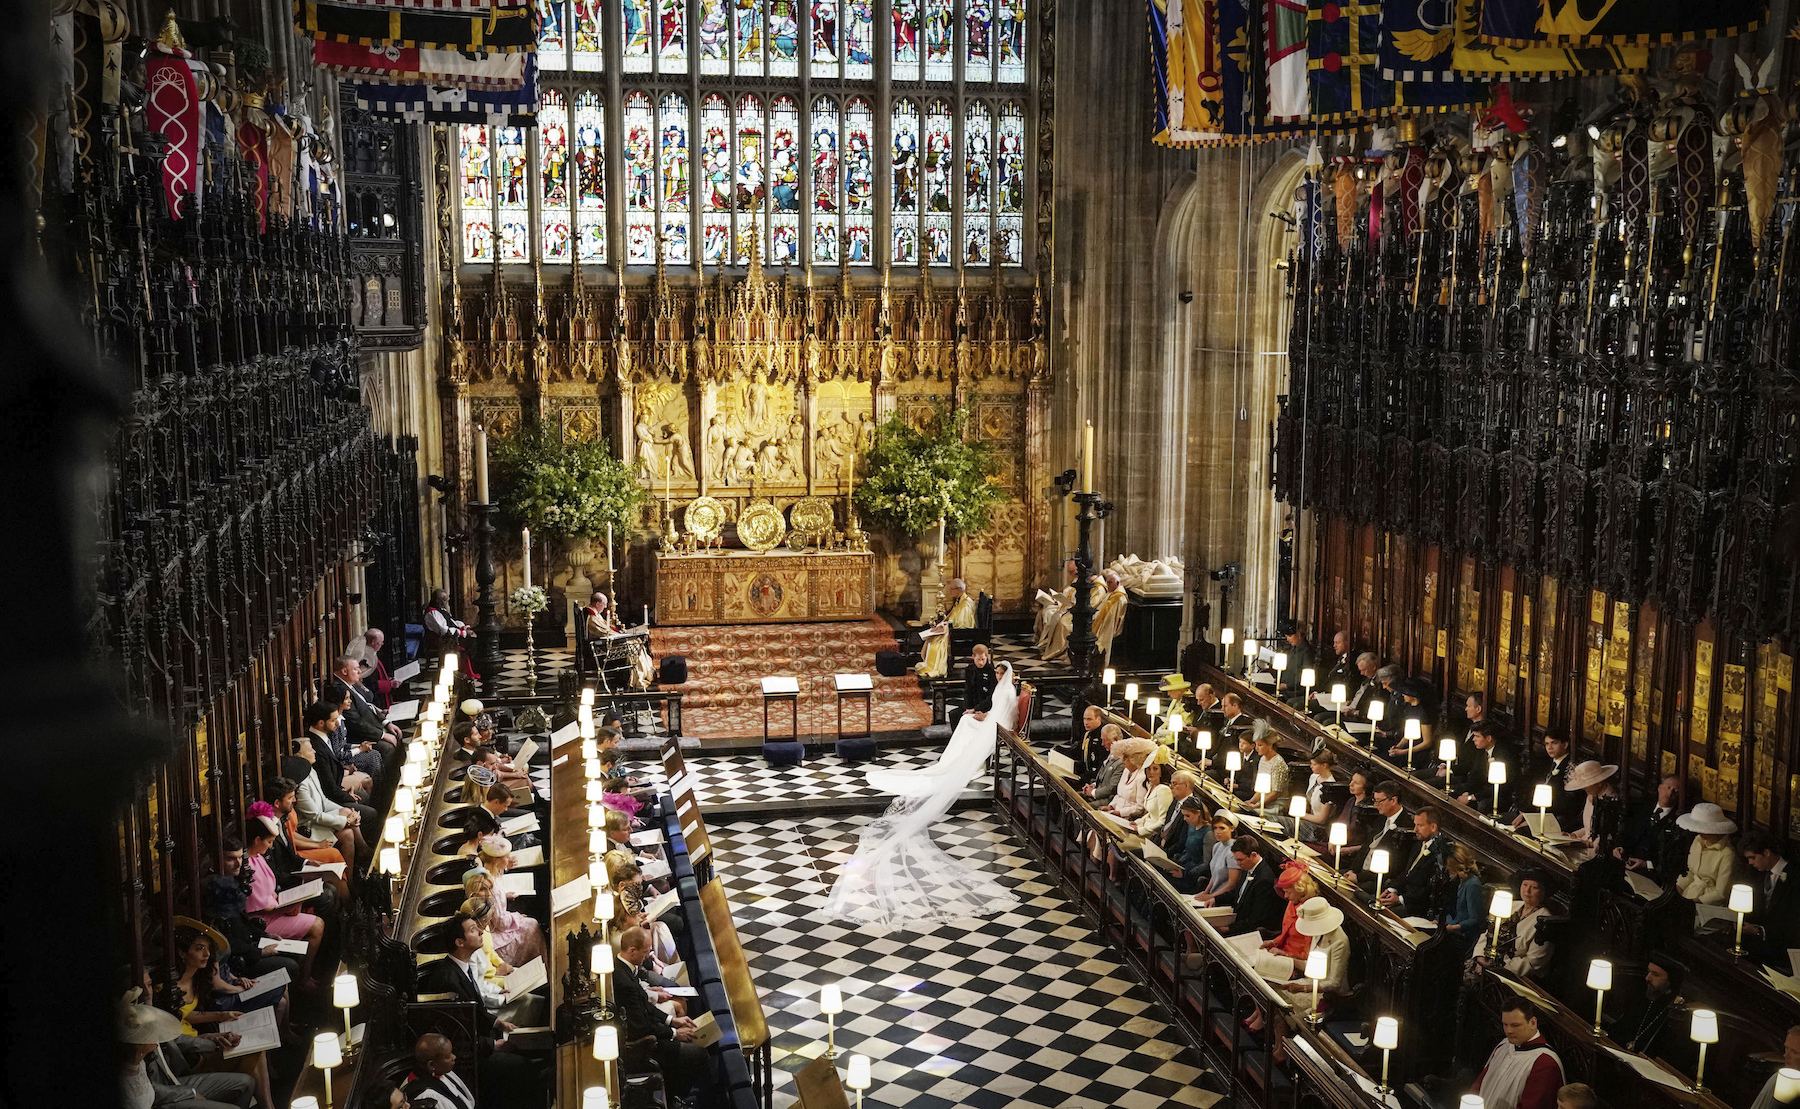 "<div class=""meta image-caption""><div class=""origin-logo origin-image wls""><span>wls</span></div><span class=""caption-text"">Prince Harry and Meghan Markle in St George's Chapel at Windsor Castle during their wedding service. (Owen Humphreys/PA Wire)</span></div>"